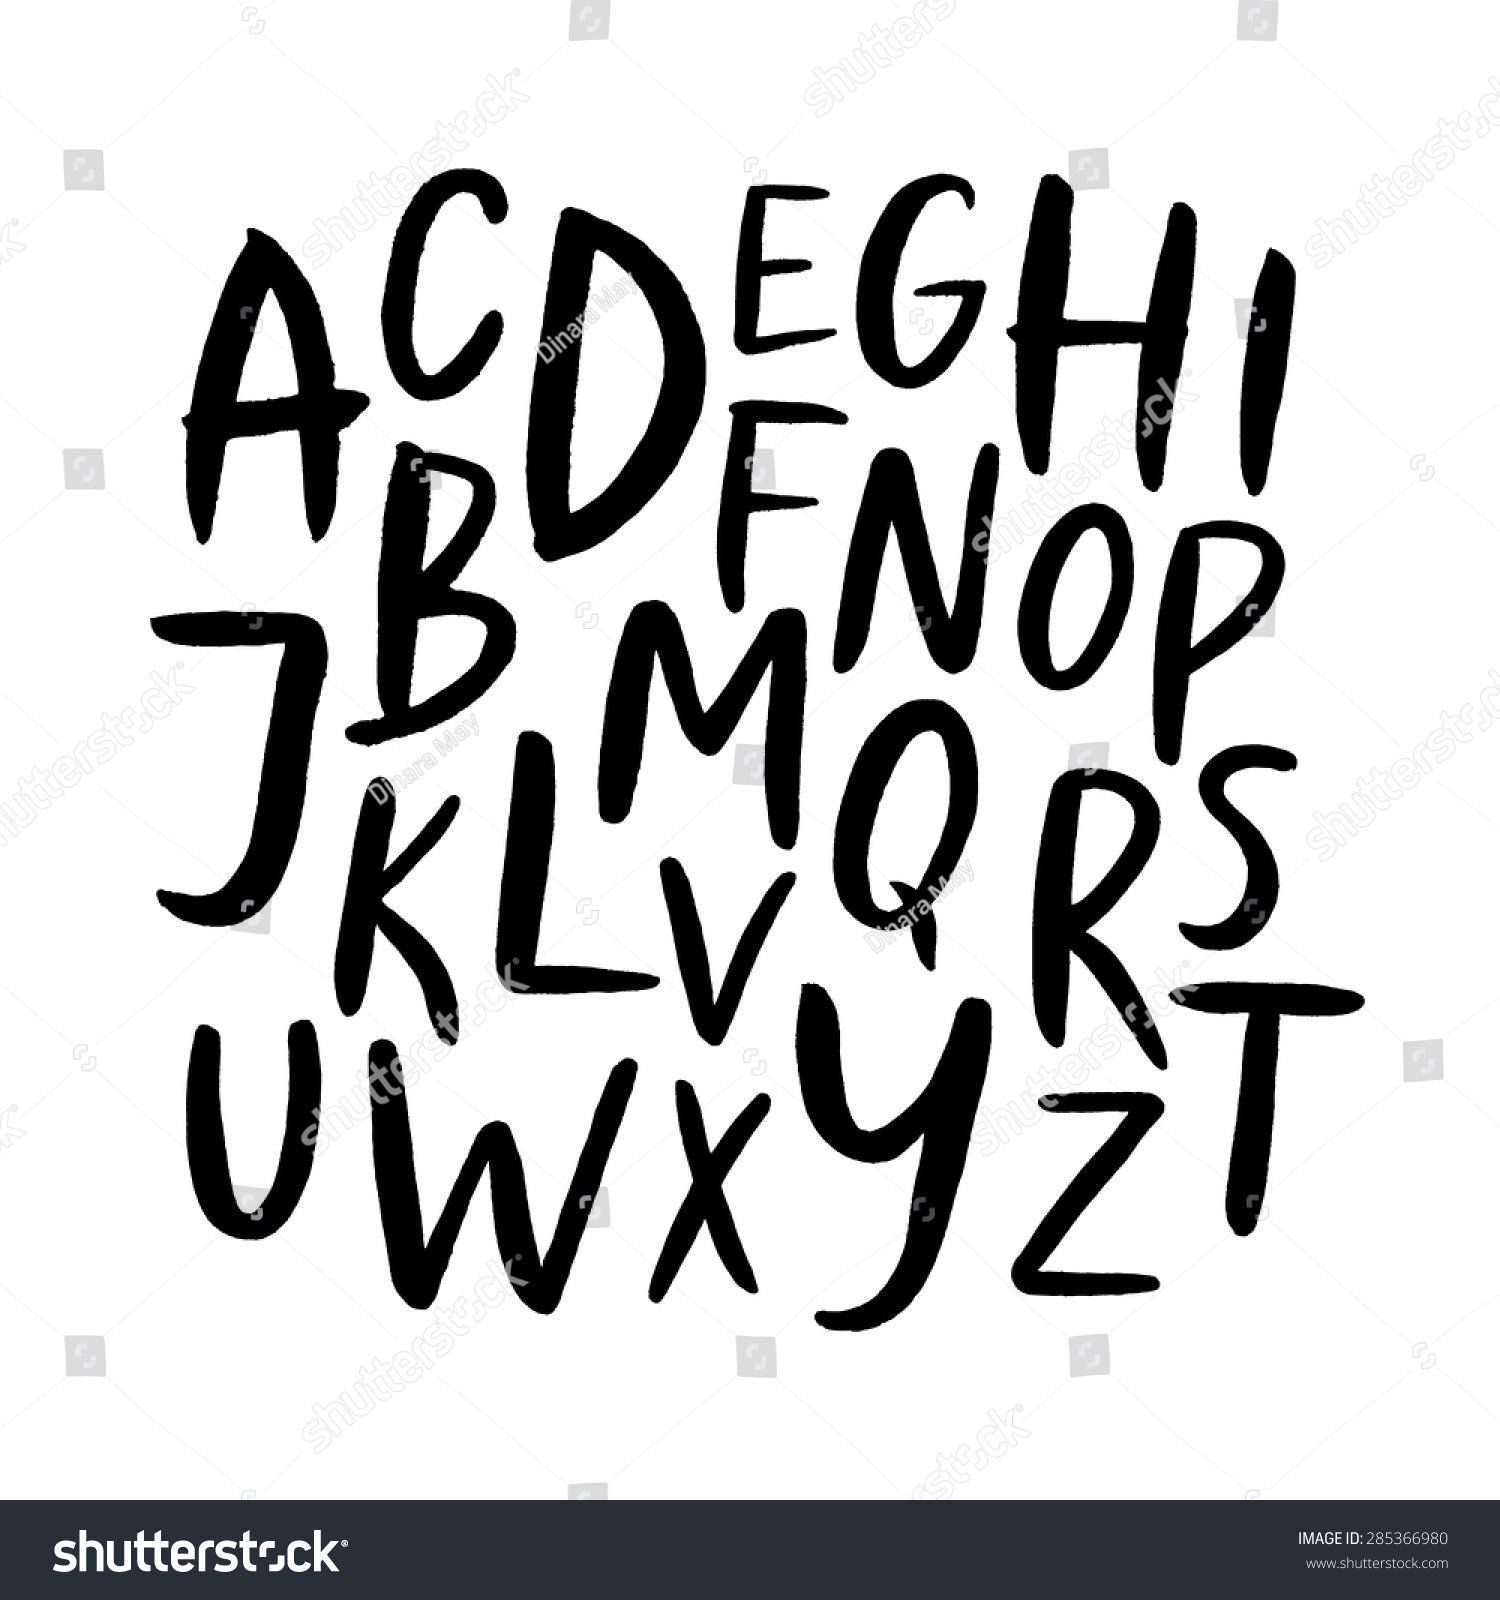 Worksheet Handwritten Alphabet handwritten alphabet ink hand lettering modern stock vector brush drawn uppercase letters